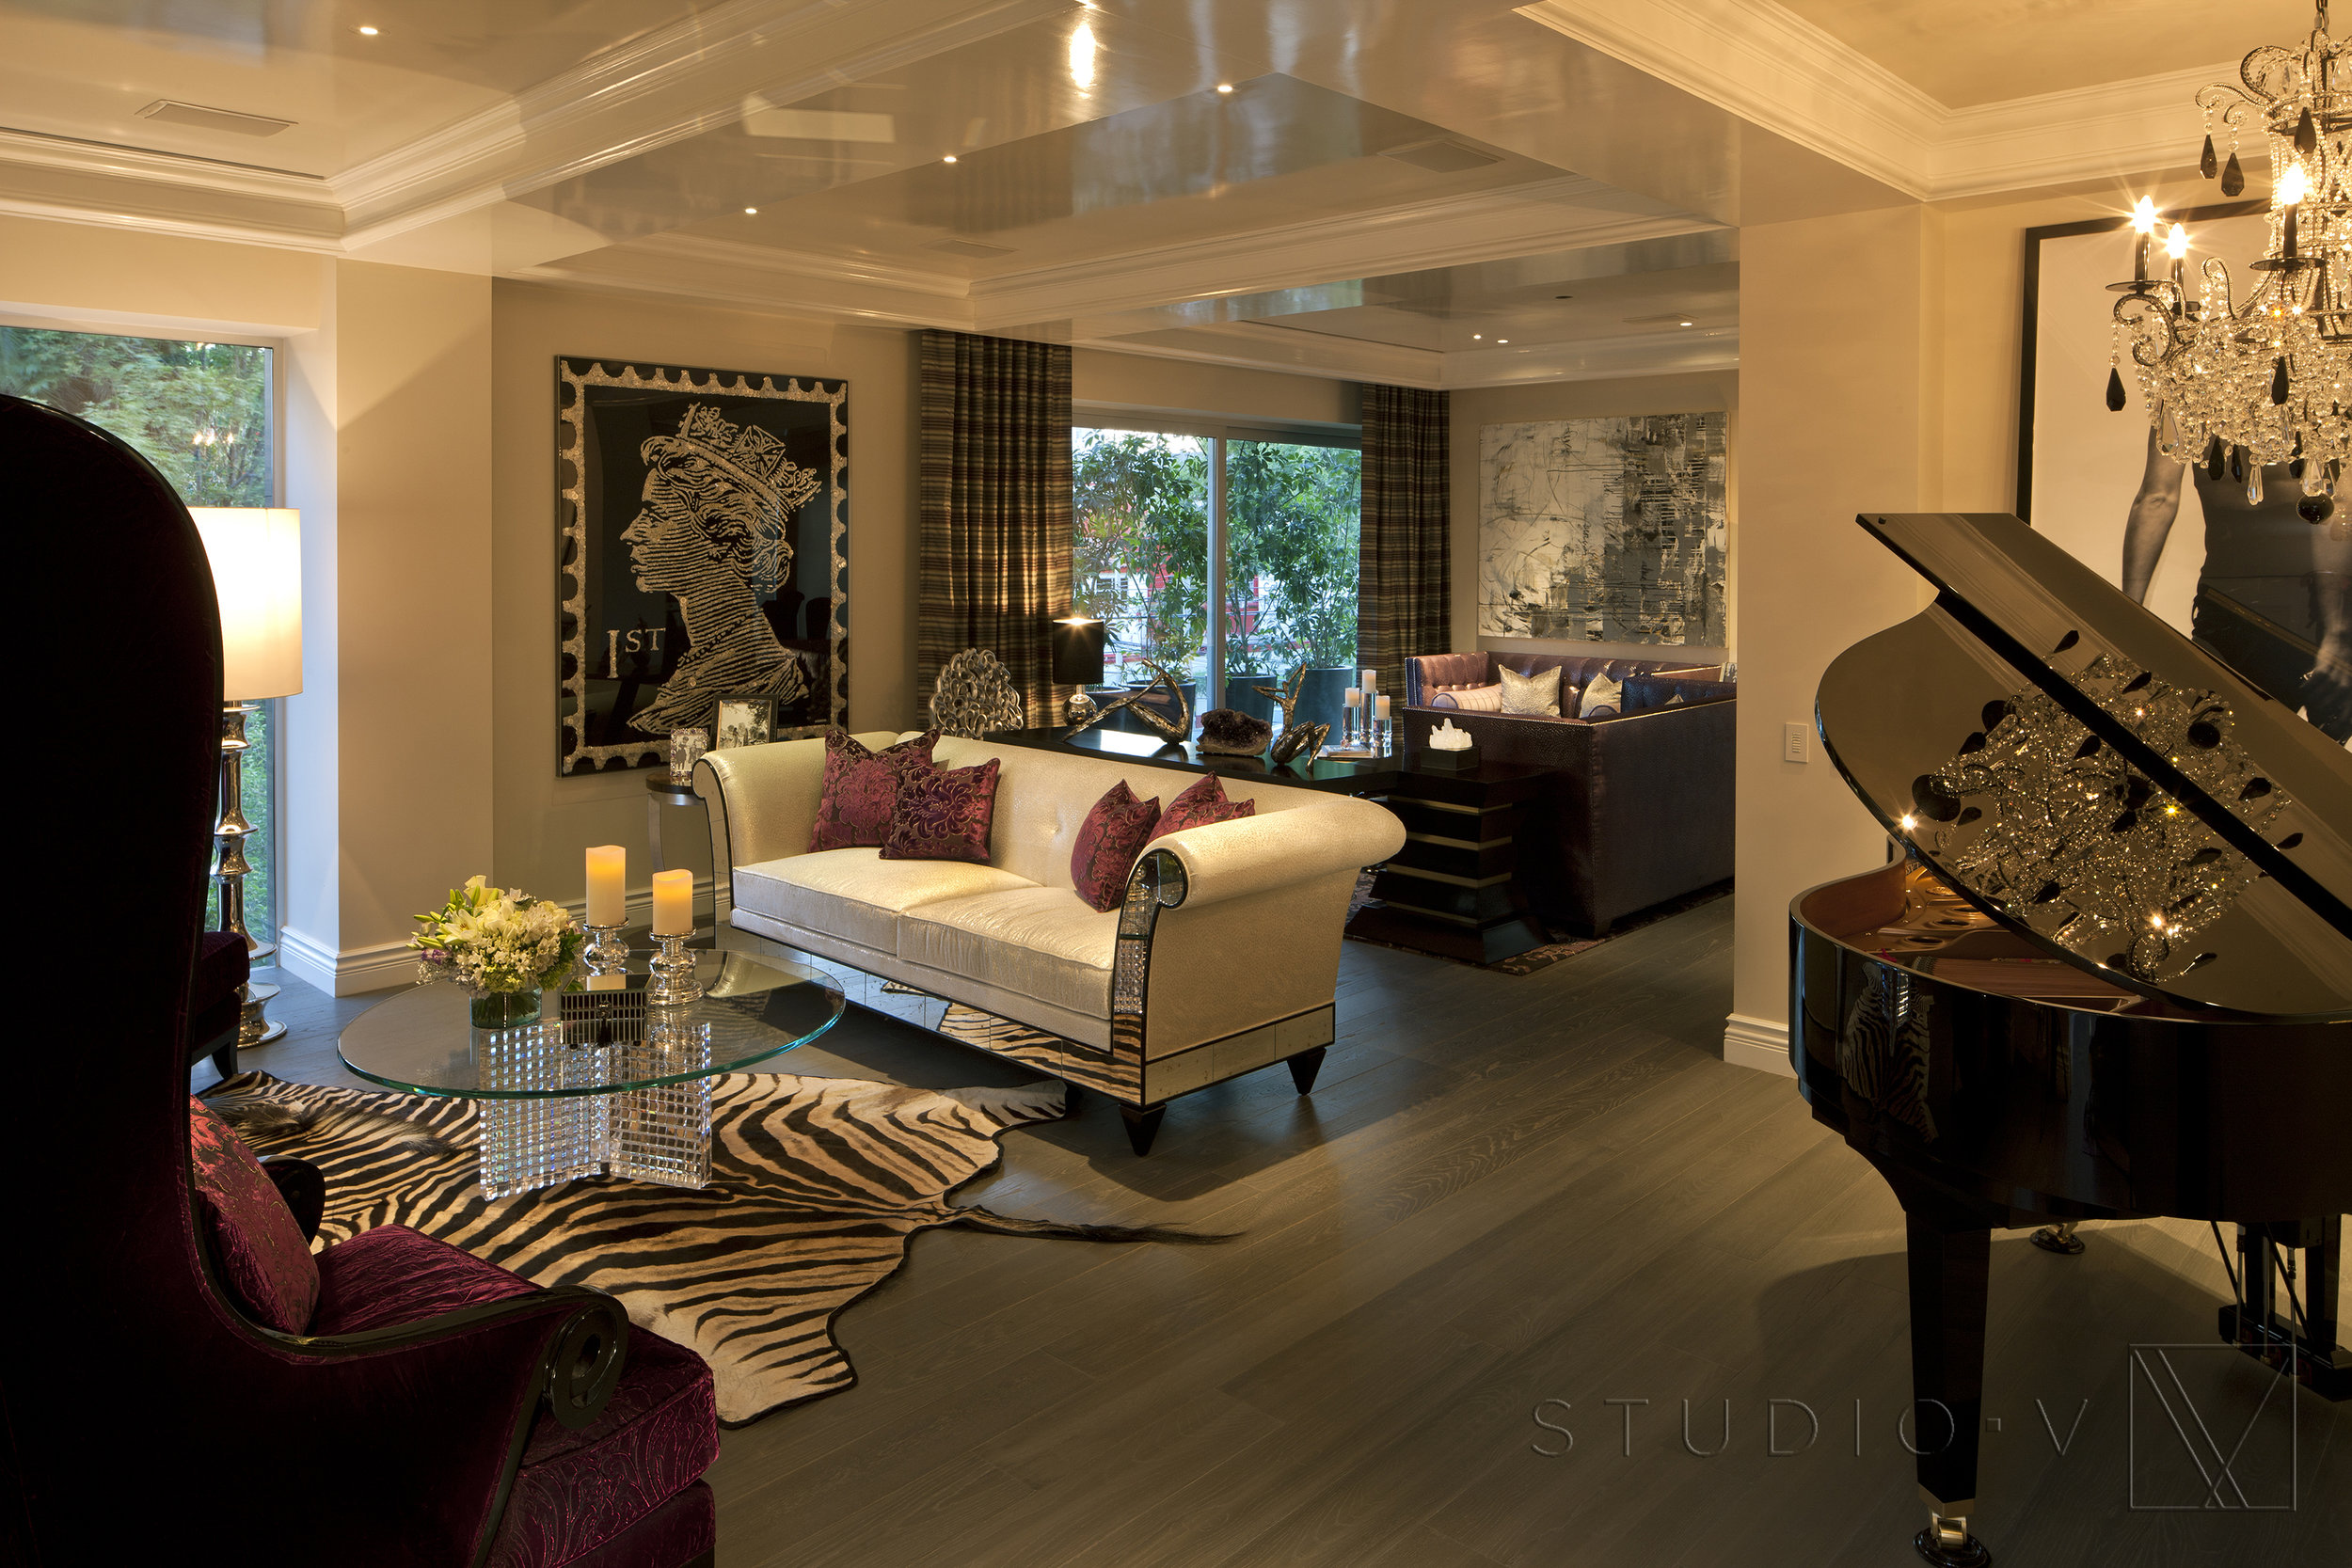 06_A living room grand view #2.jpg